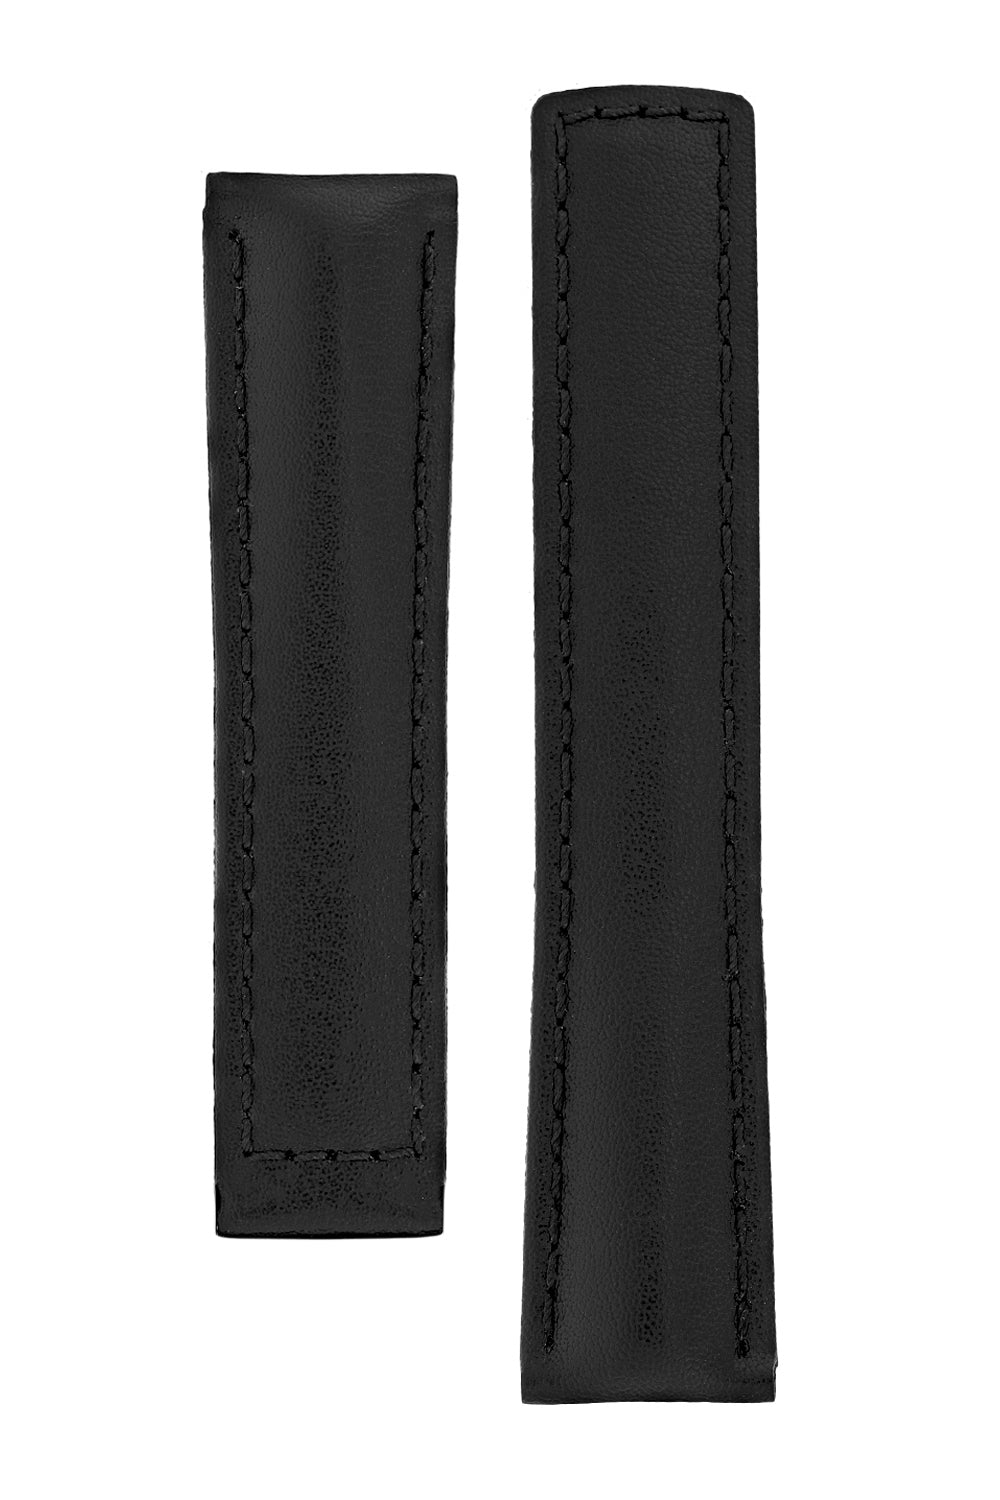 Hirsch SPEED Calfskin Deployment Watch Strap in BLACK